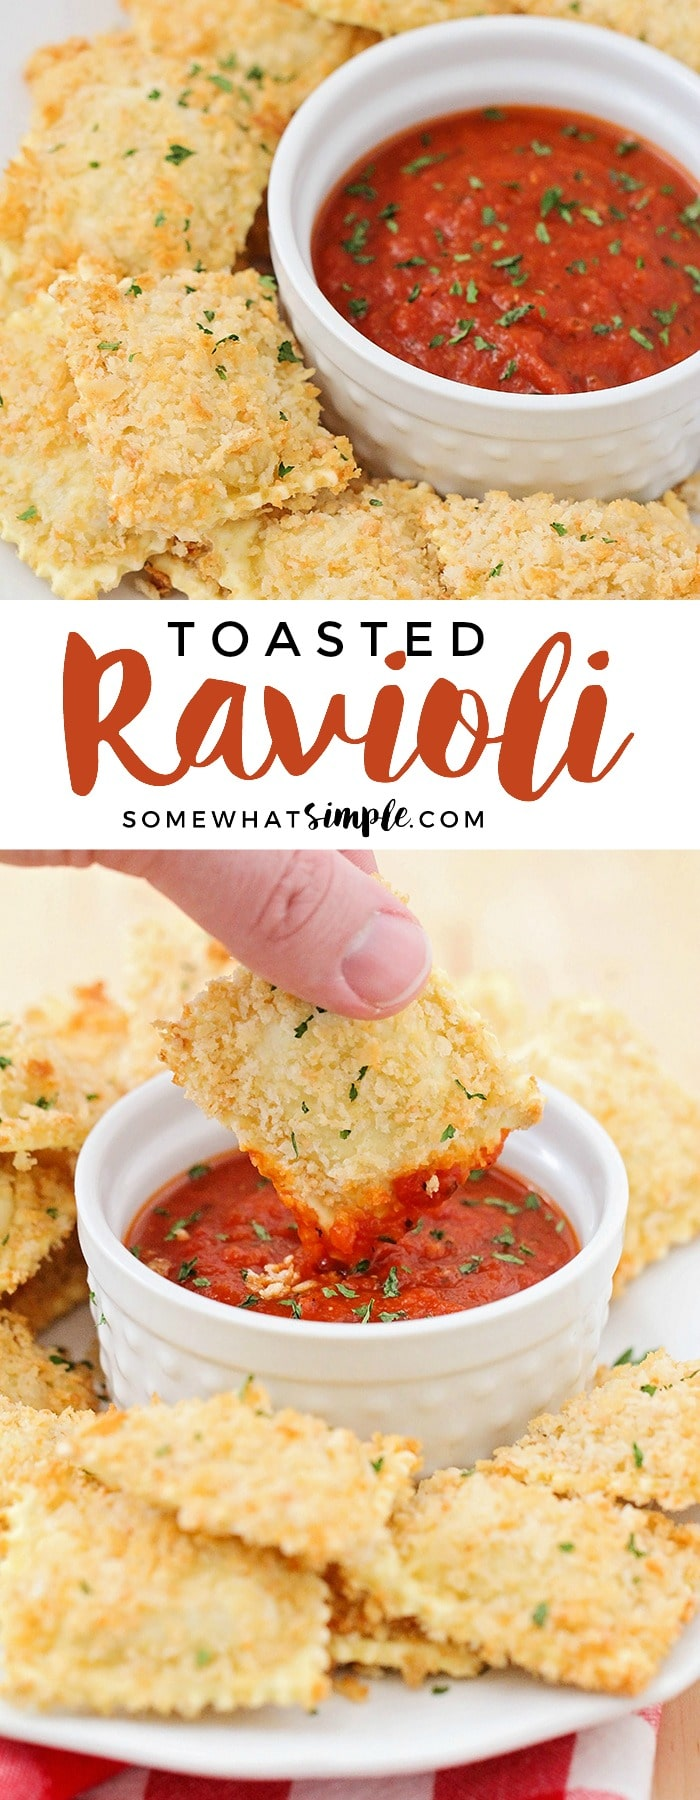 This crispy and cheesy toasted ravioli is baked instead of fried, but still just as delicious. It's a tasty snack for game day or party time! #dinner #dinnerrecipes #easydinner #easyrecipe #appetizer #partyfood